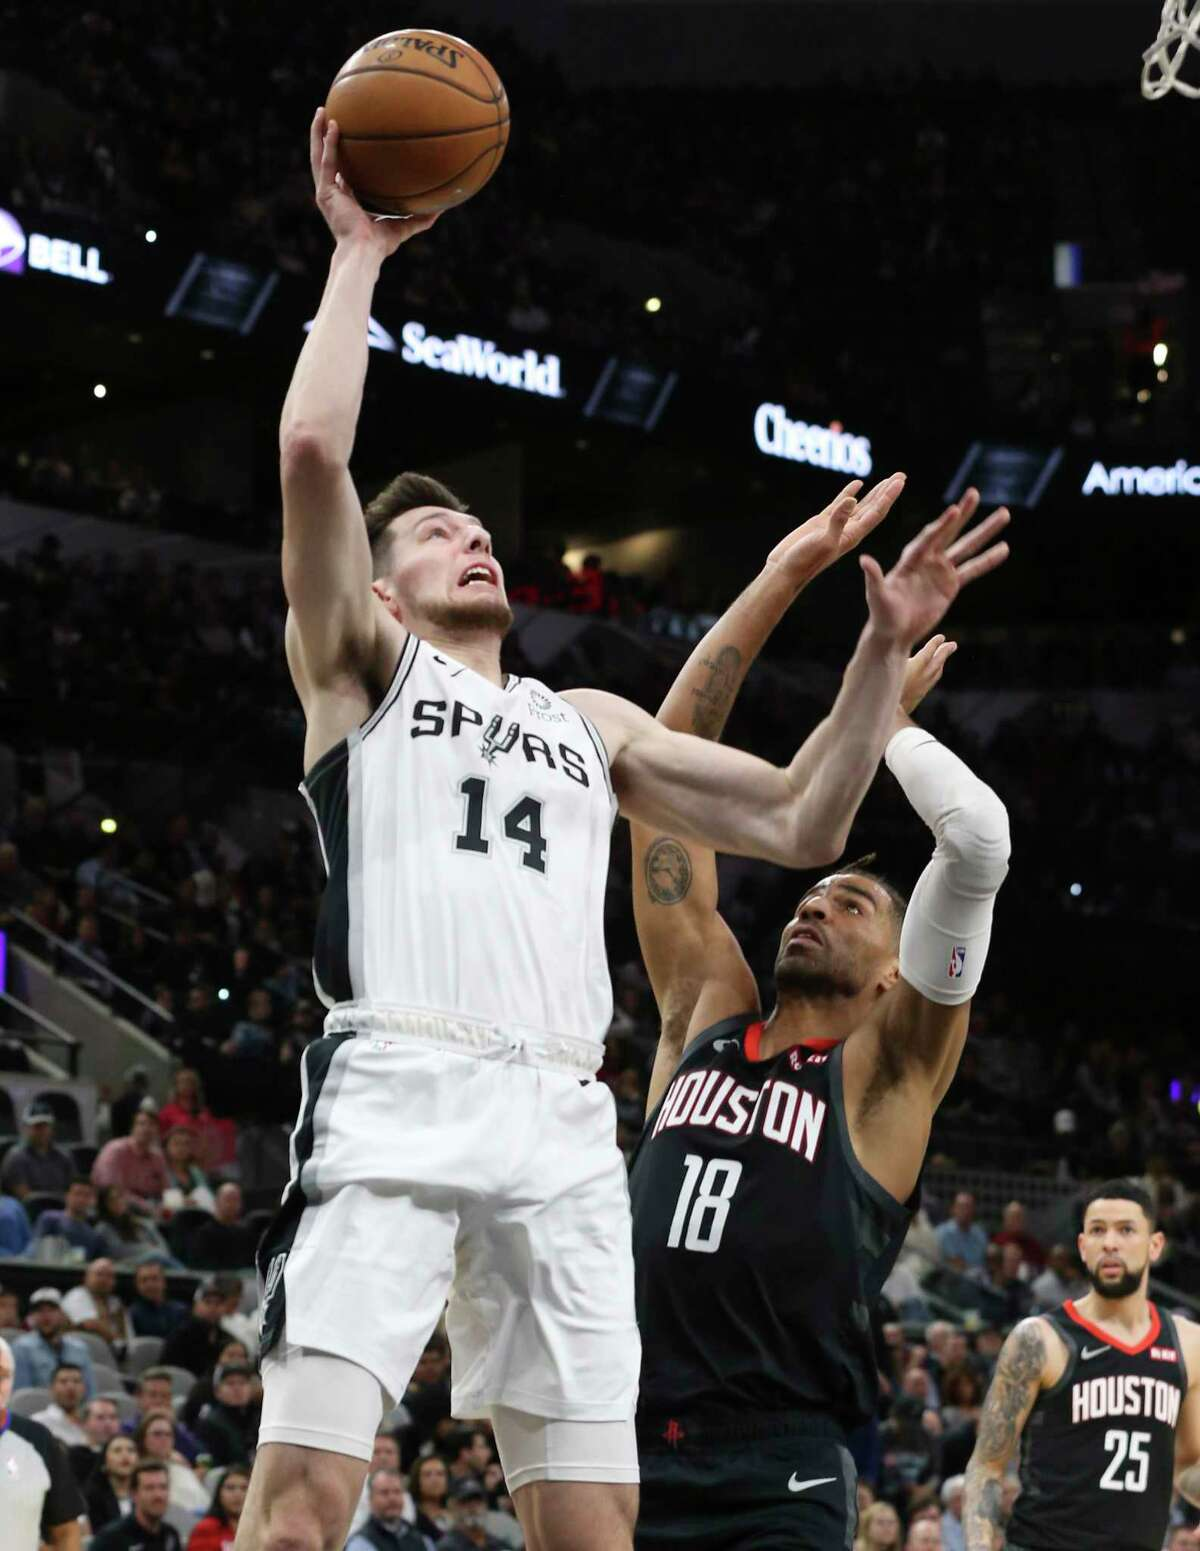 The Spurs' Drew Eubanks (14) resigned with the team Friday as the NBA's free agency period began.